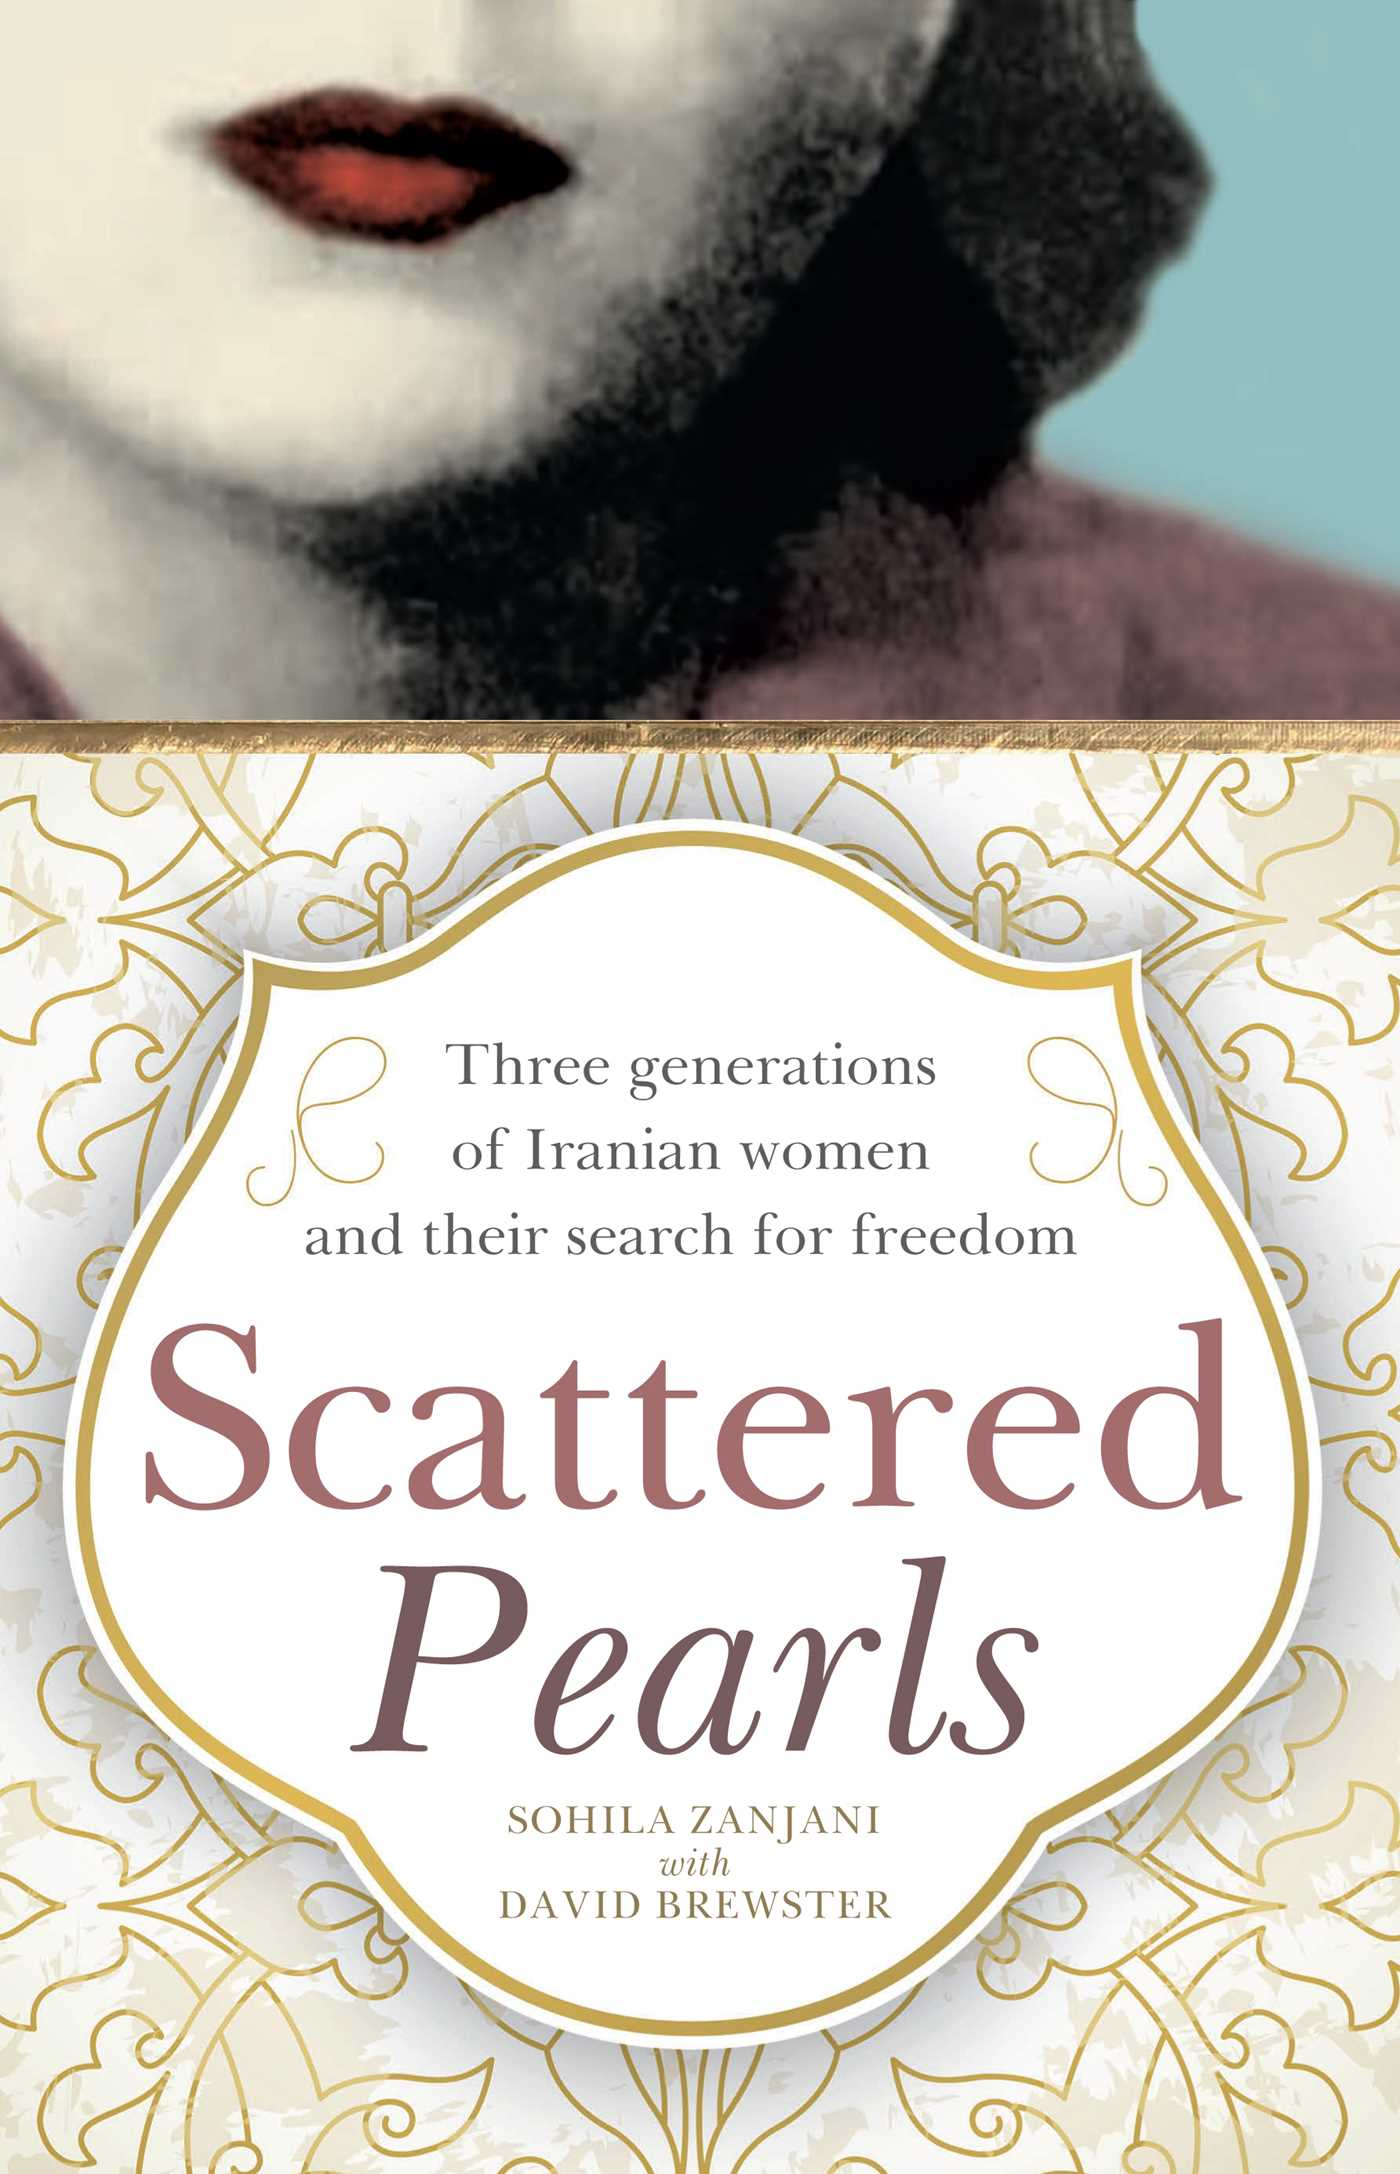 Scattered pearls 9781925030969 hr